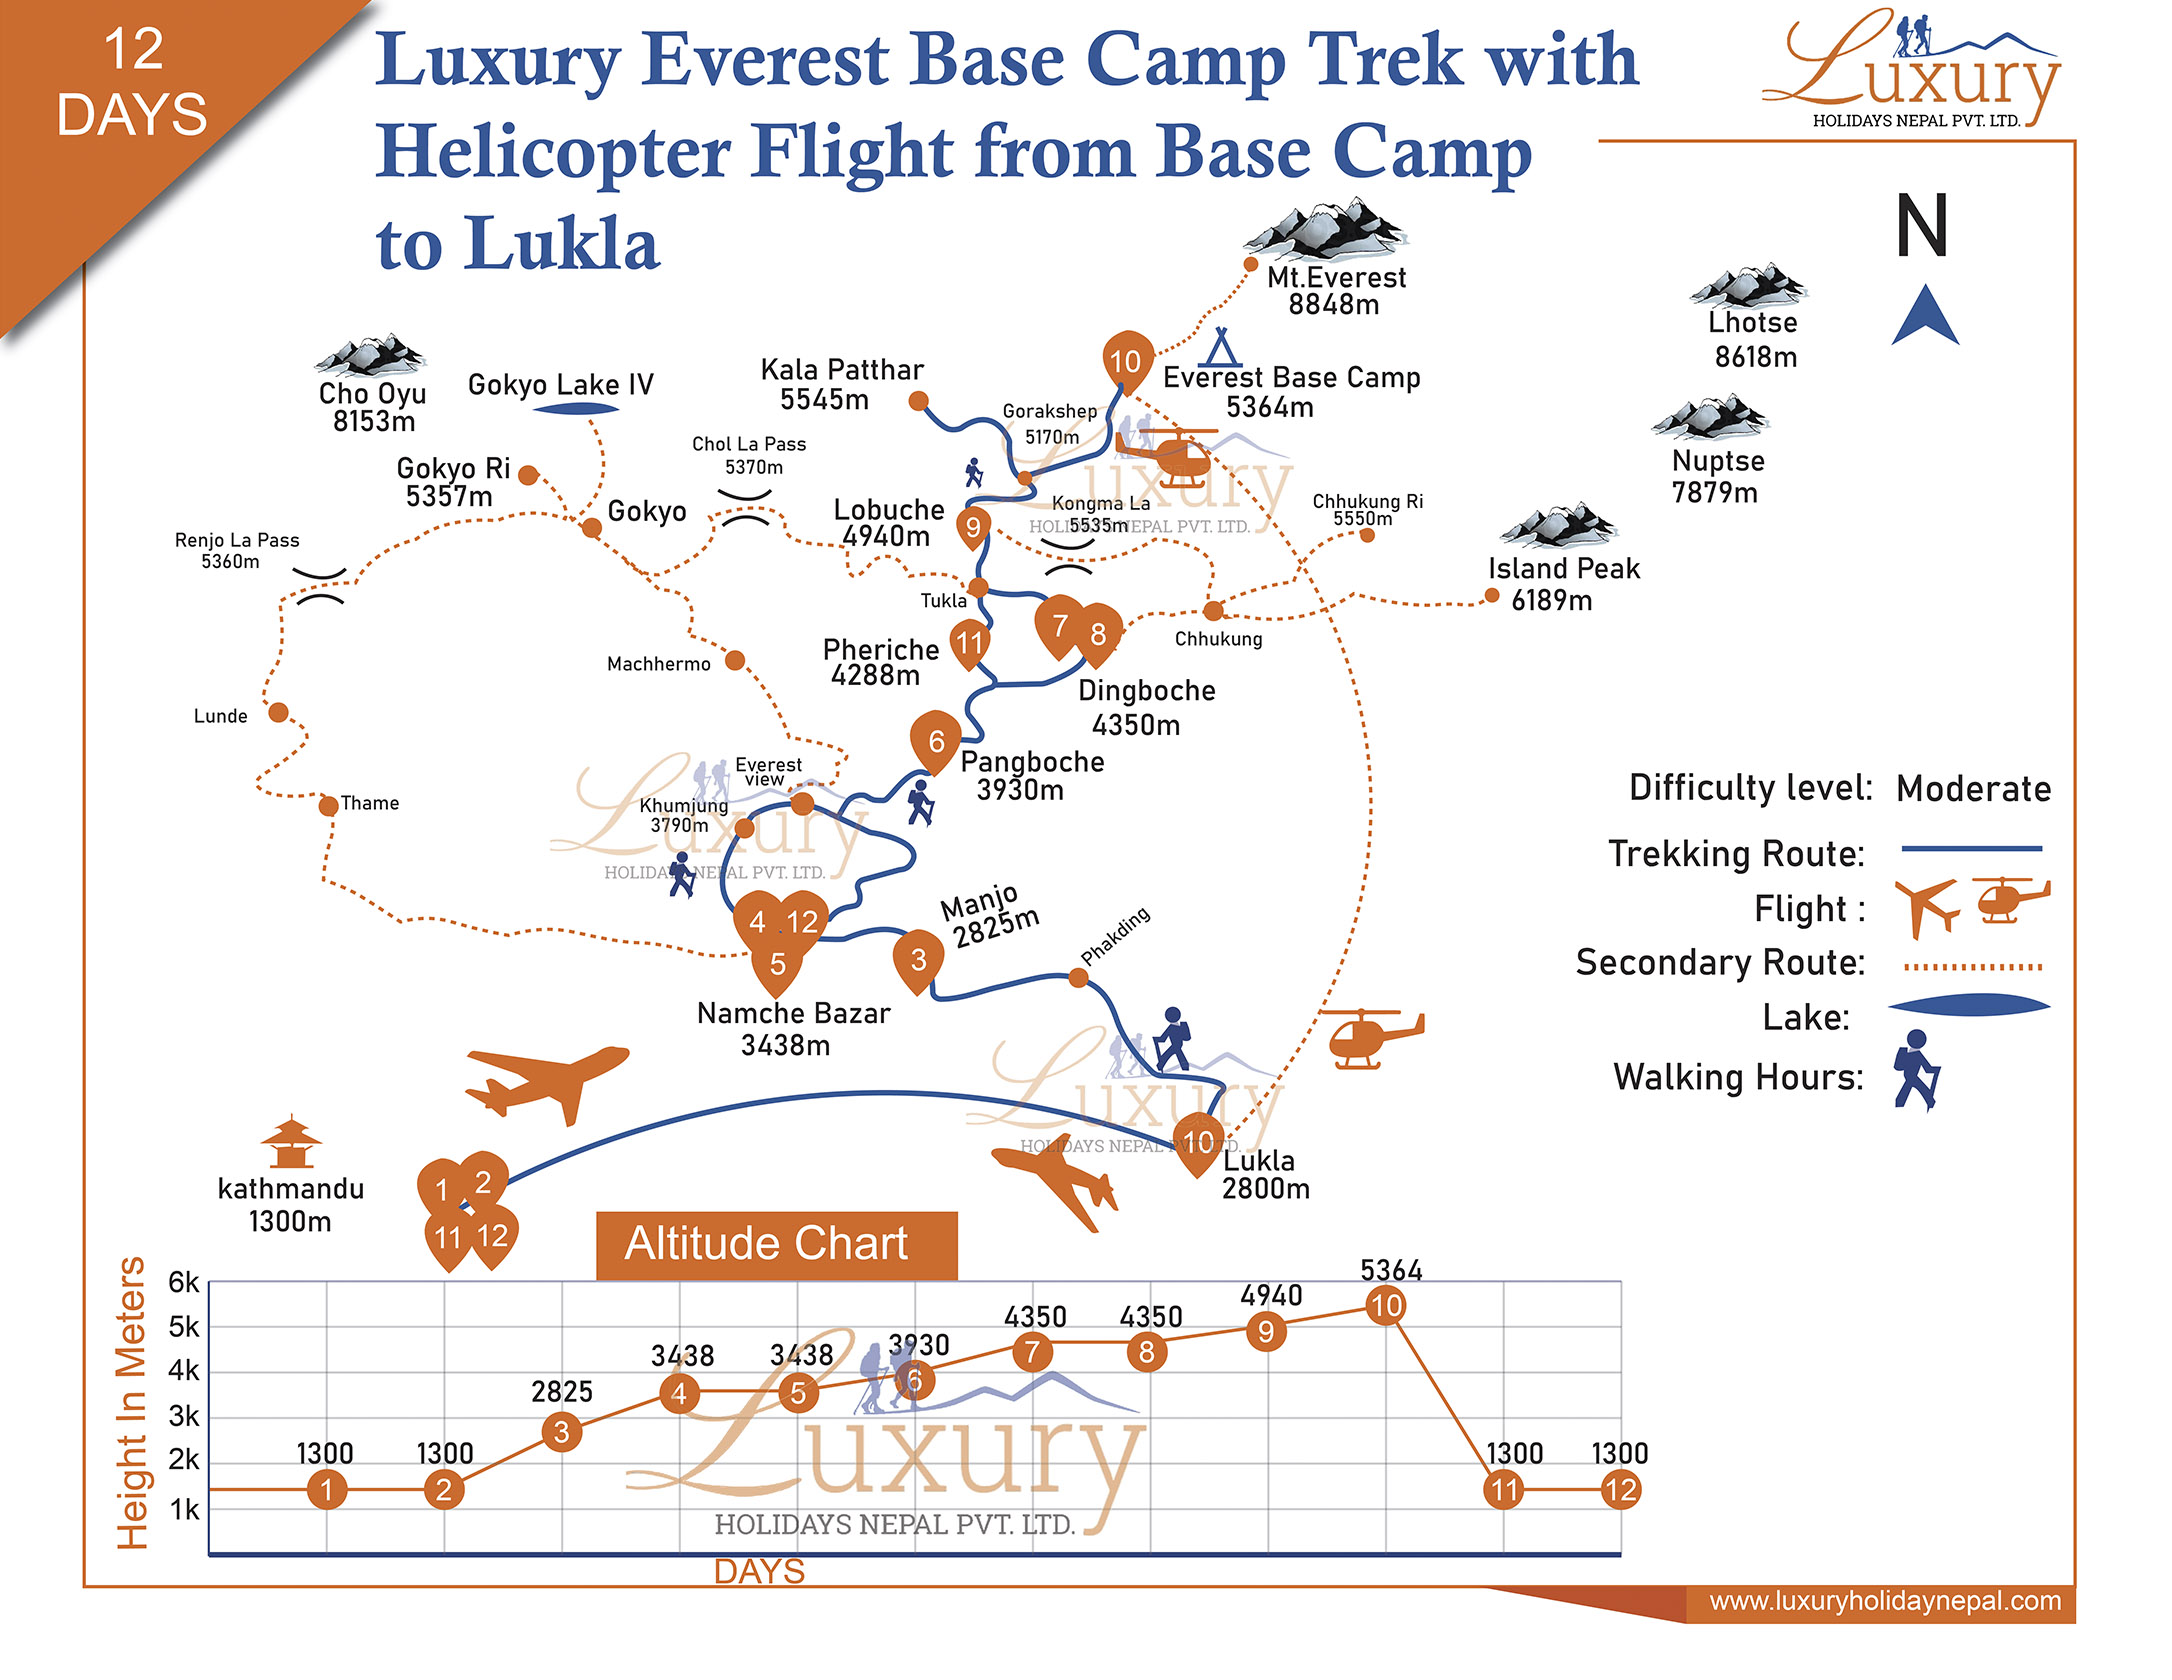 Luxury Everest Base Camp Trek with Helicopter flight from Base Camp to Lukla Trip Map